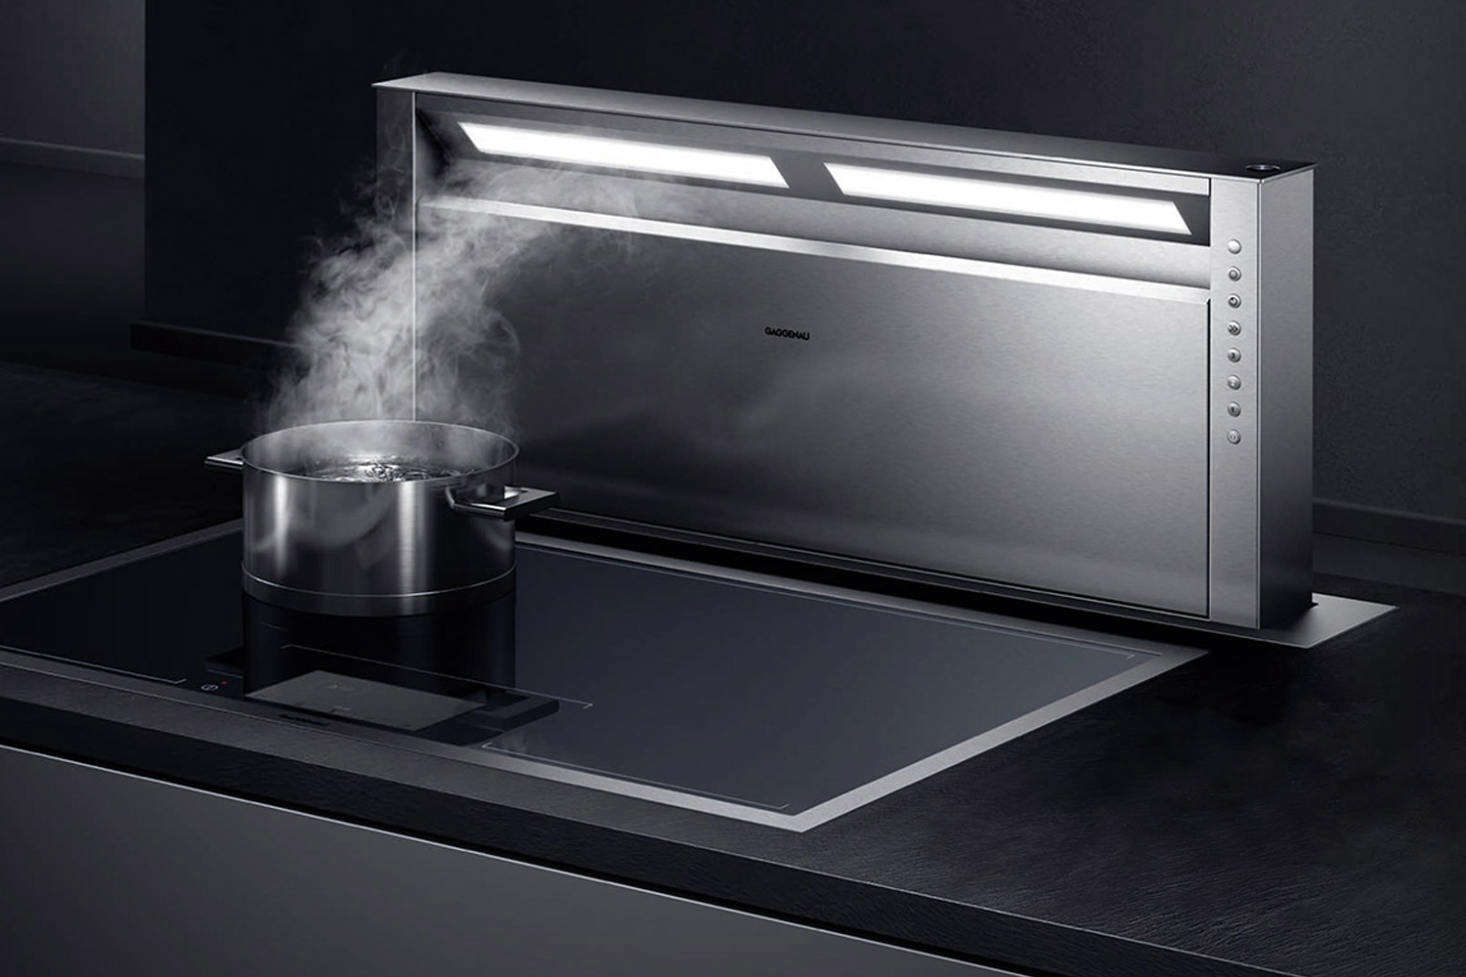 The gaggenau 400 series retractable downdraft vent comes in two sizes and is positioned at the